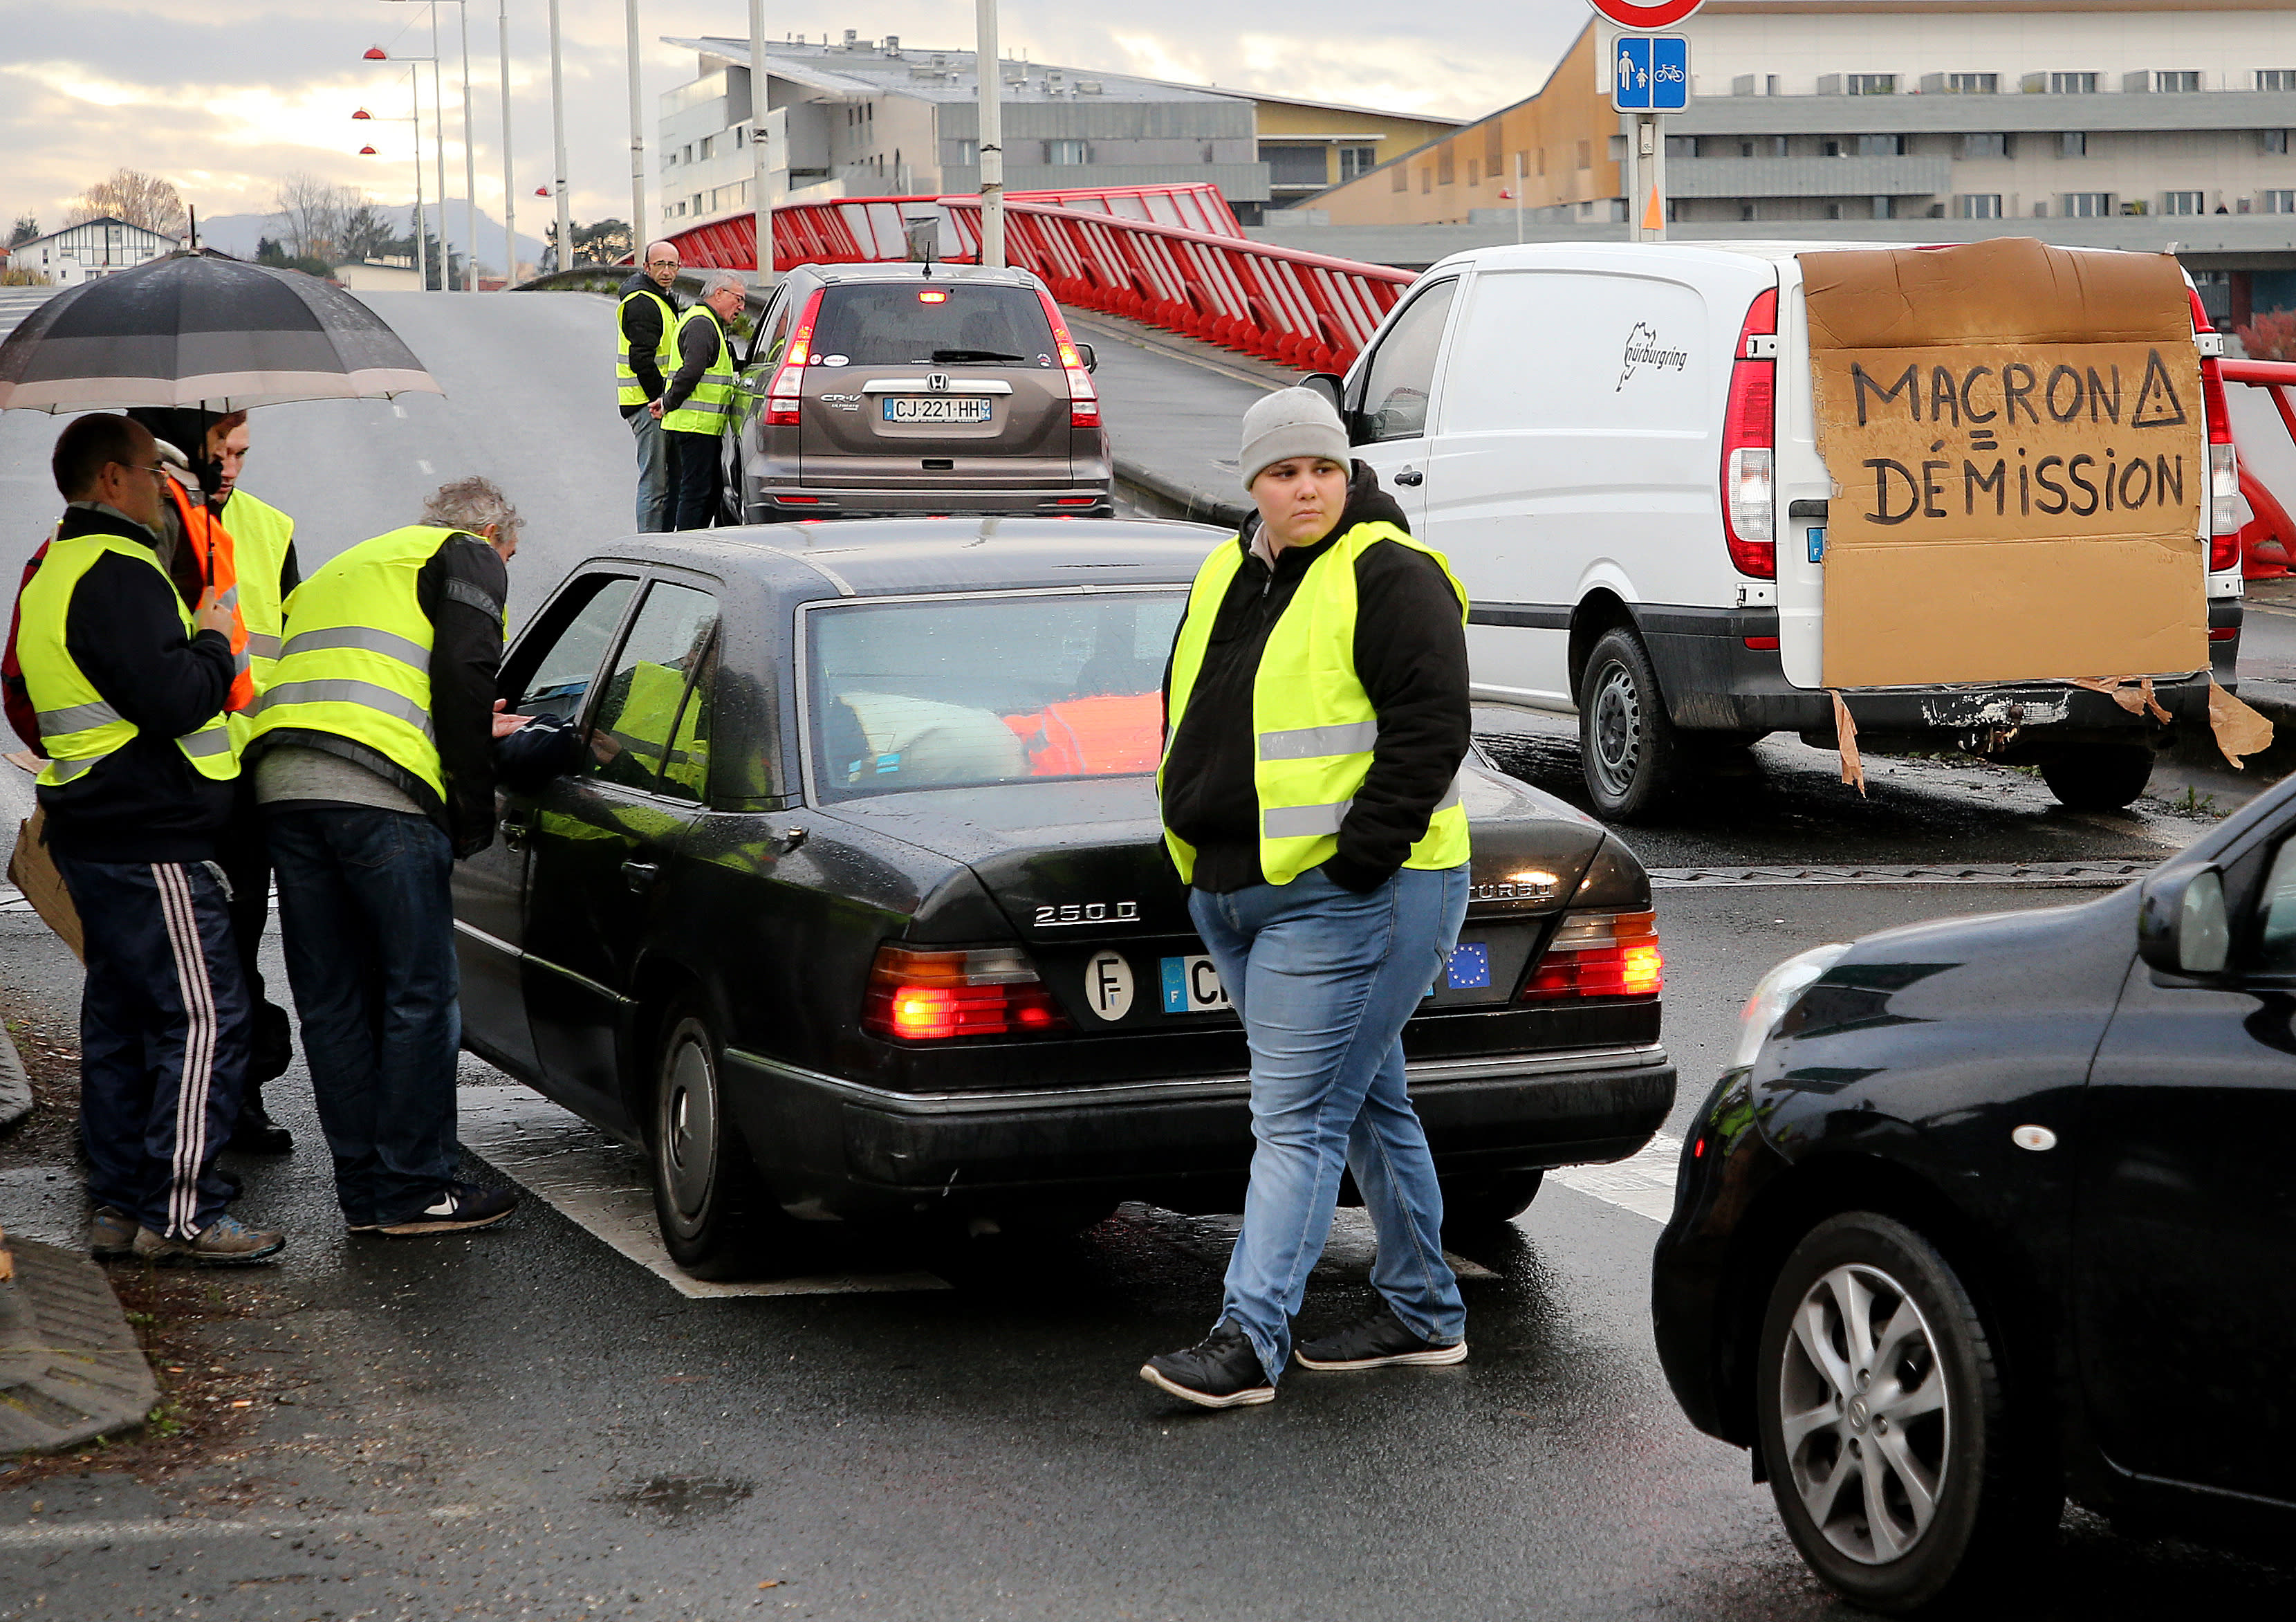 Demonstrators block cars in Bayonne, southwestern France, Sunday, Nov. 18, 2018. One protester was killed and 227 other people were injured — eight seriously — at roadblocks set up around villages, towns and cities across France on Saturday as citizens angry with rising fuel taxes rose up in a grassroots movement, posing a new challenge to beleaguered President Emmanuel Macron. (AP Photo/Bob Edme)